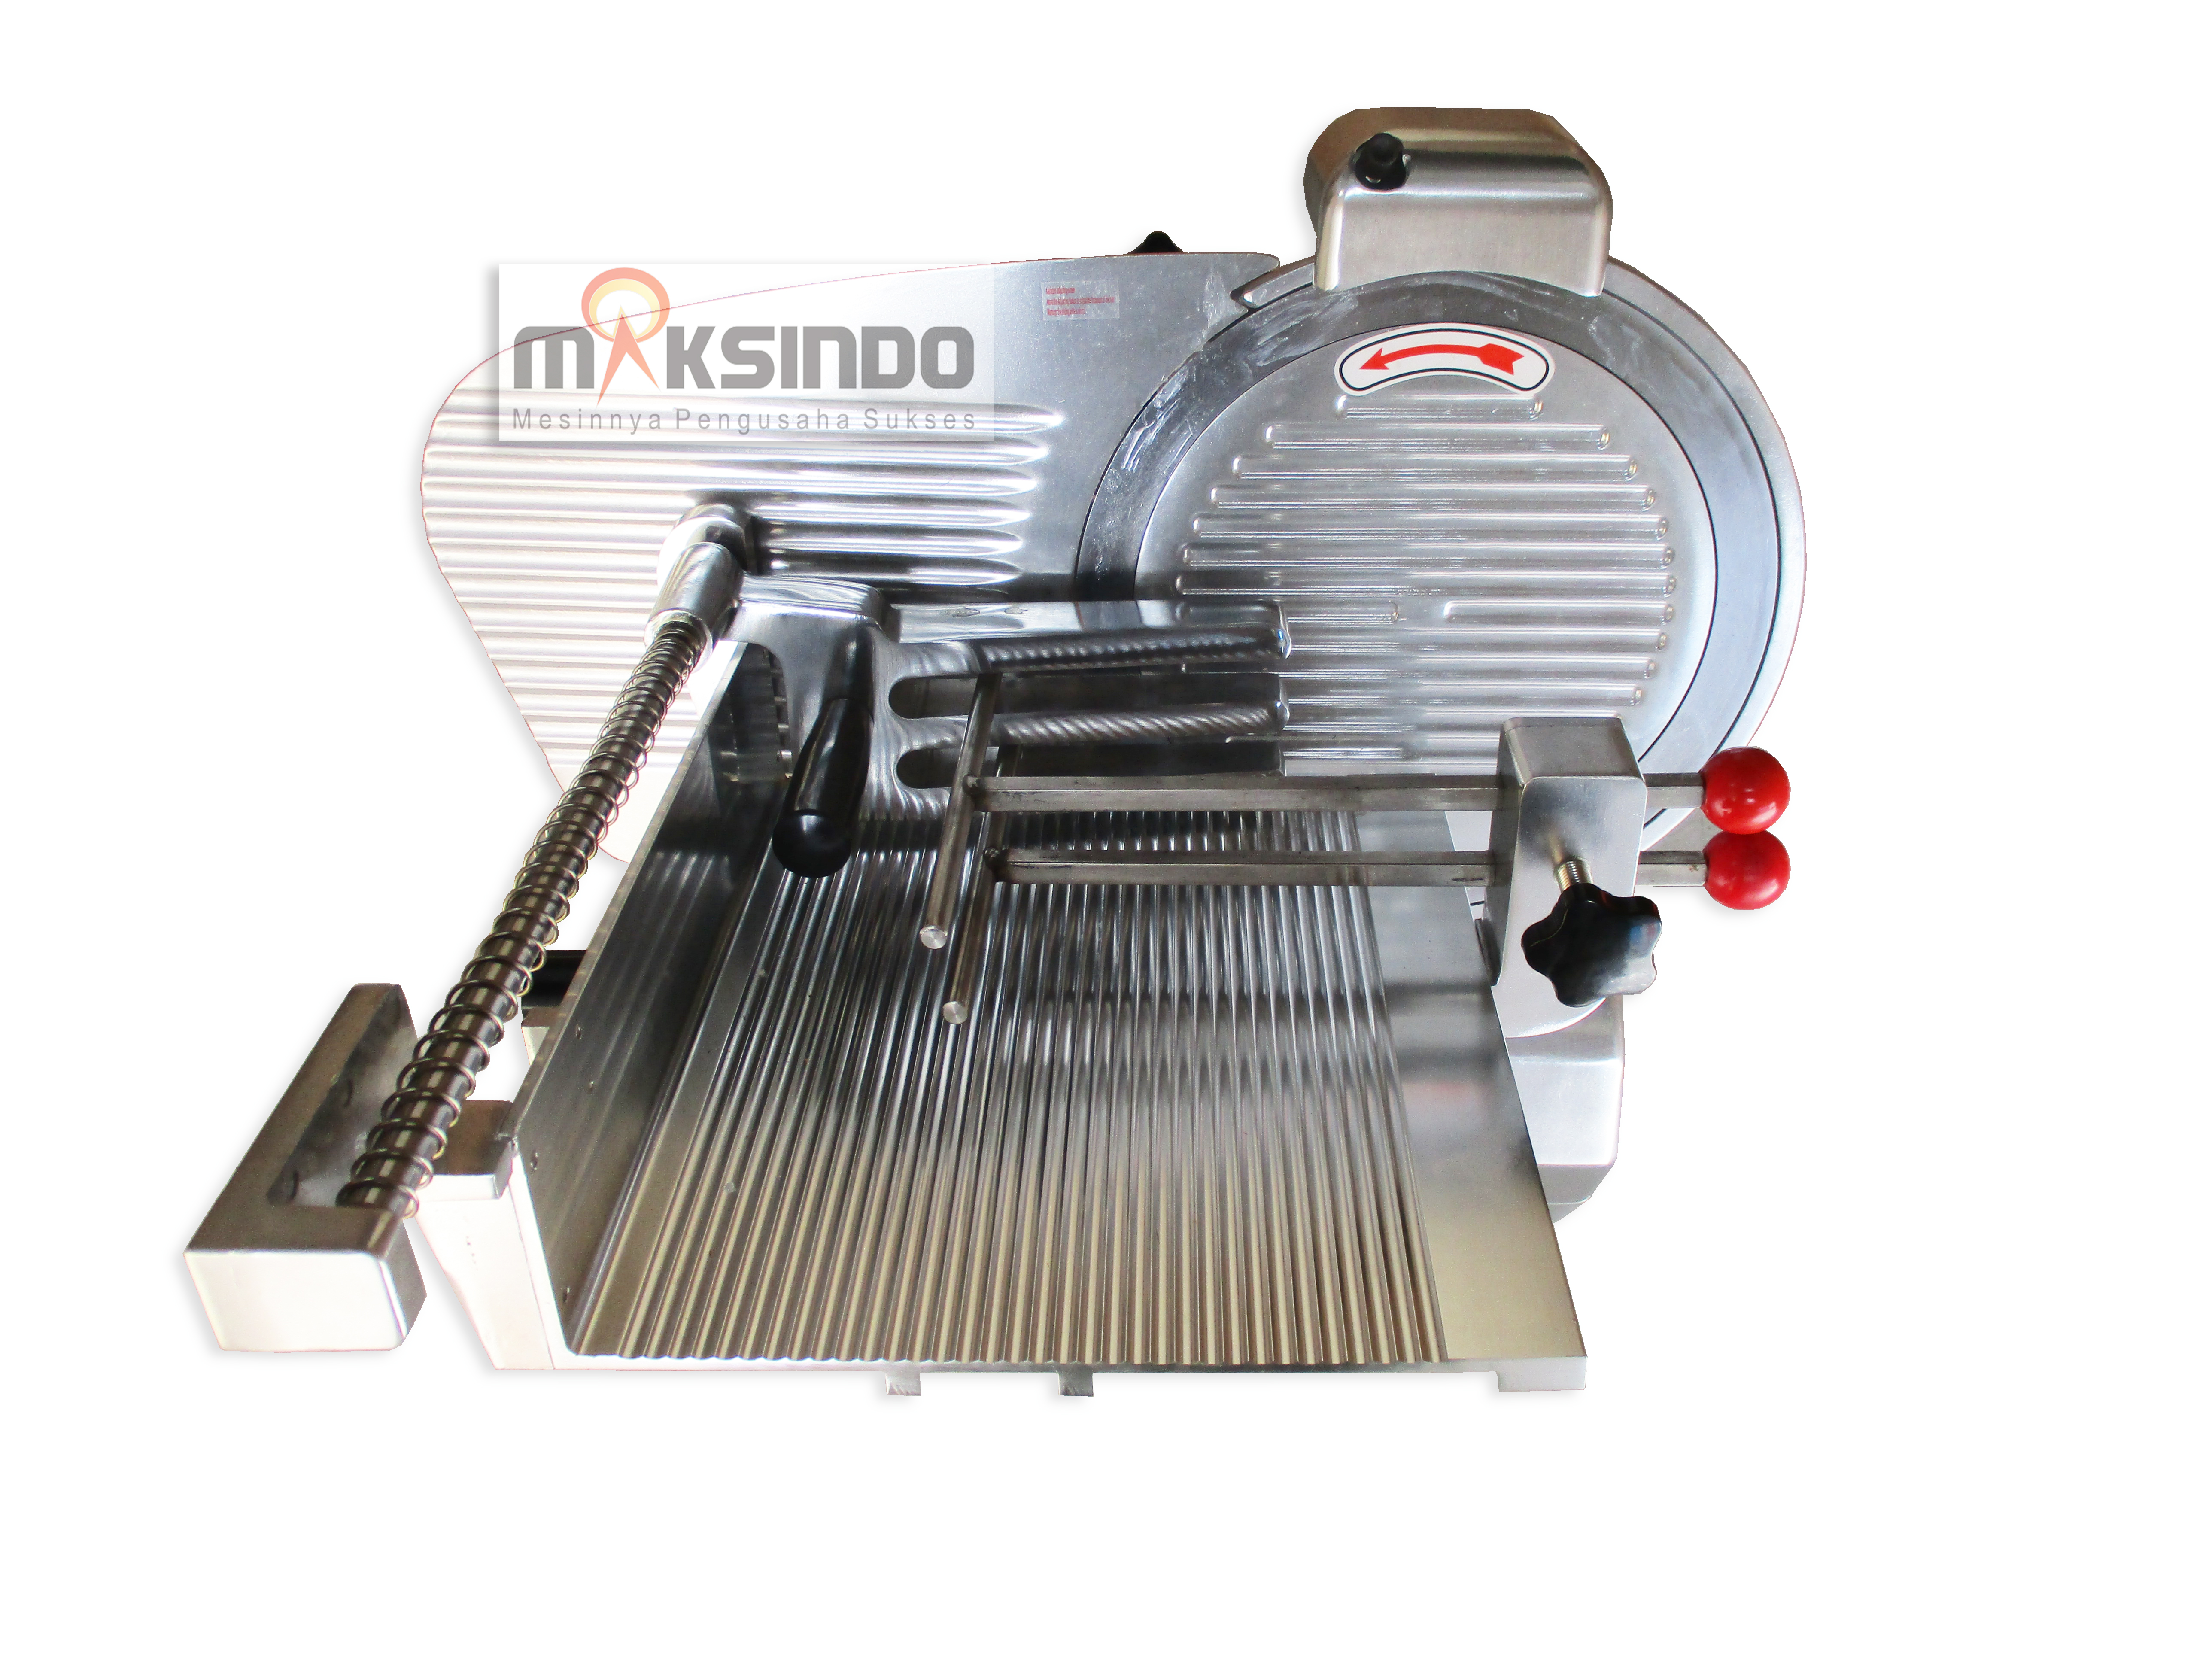 Mesin Full Automatic Meat Slicer MKS-300A1